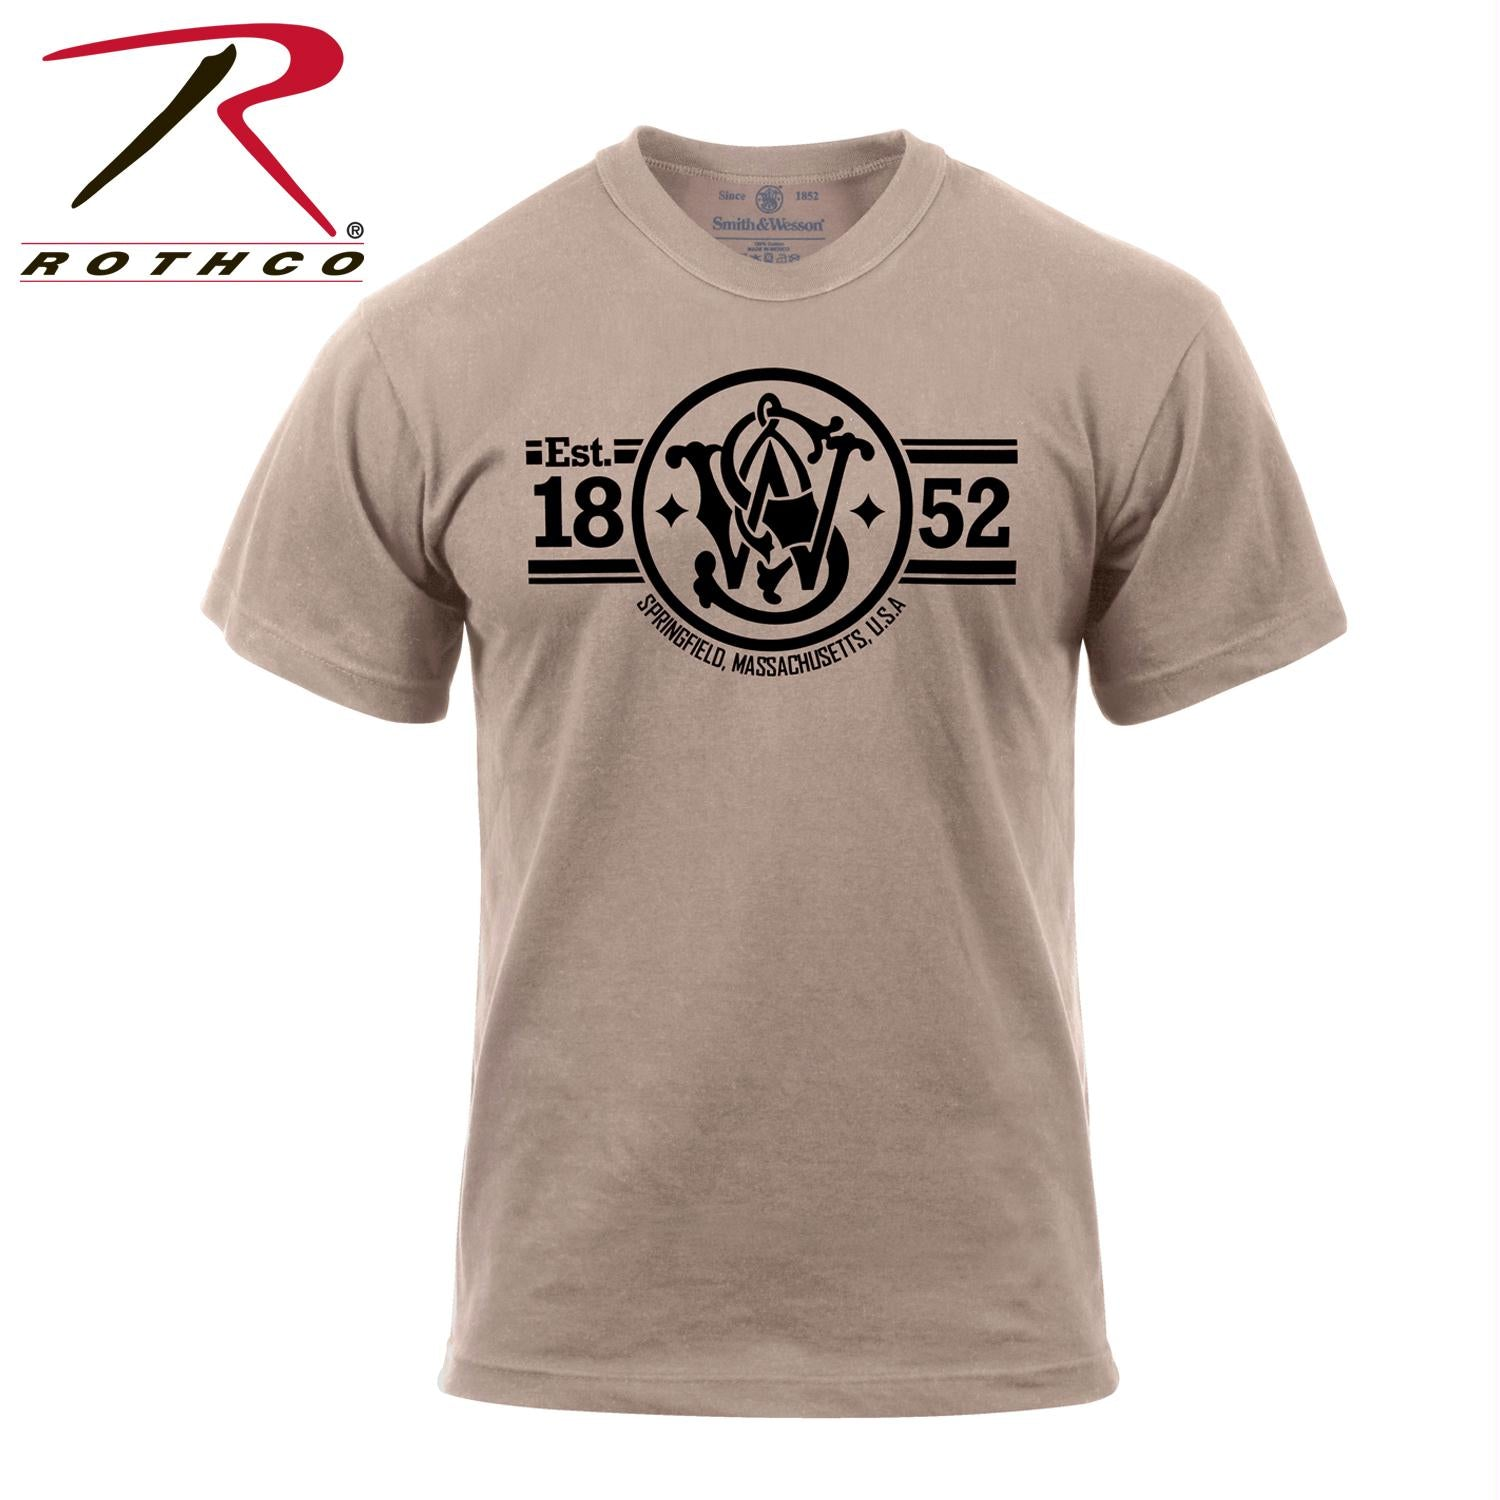 Smith & Wesson Established 1852 T-Shirt